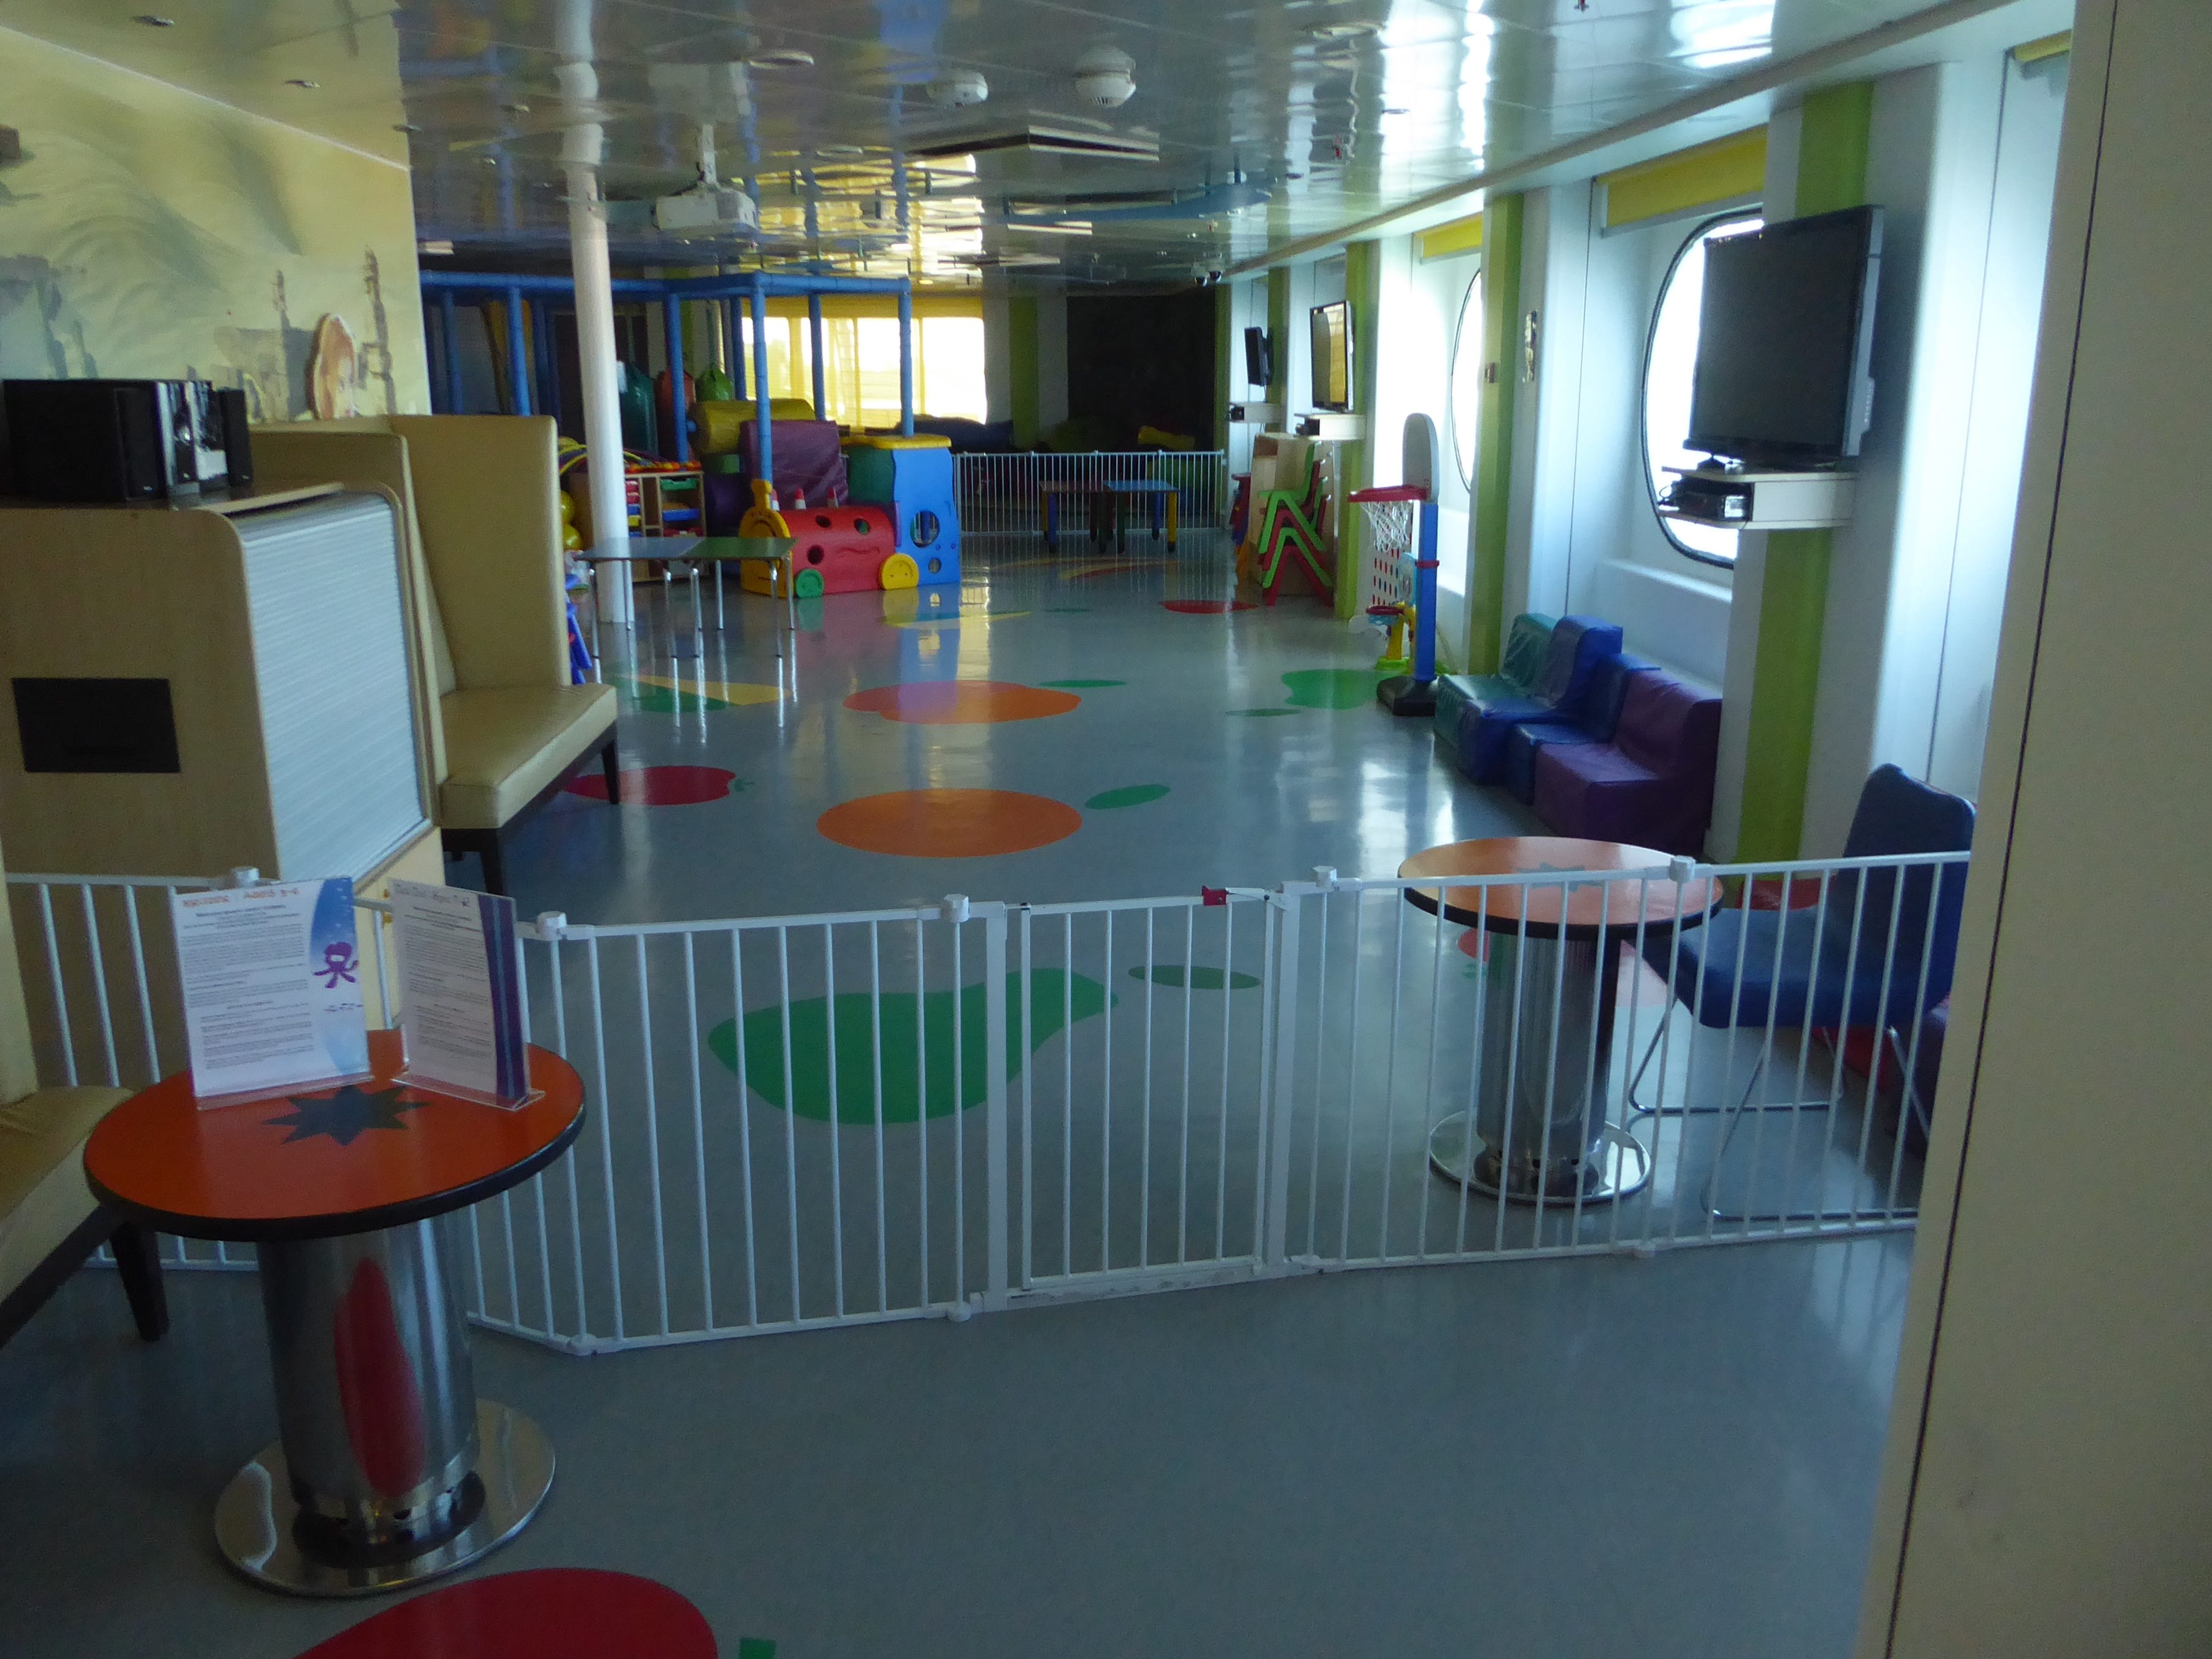 Kruzers is a playroom on aft Paradise Deck for kids aged 3-7.